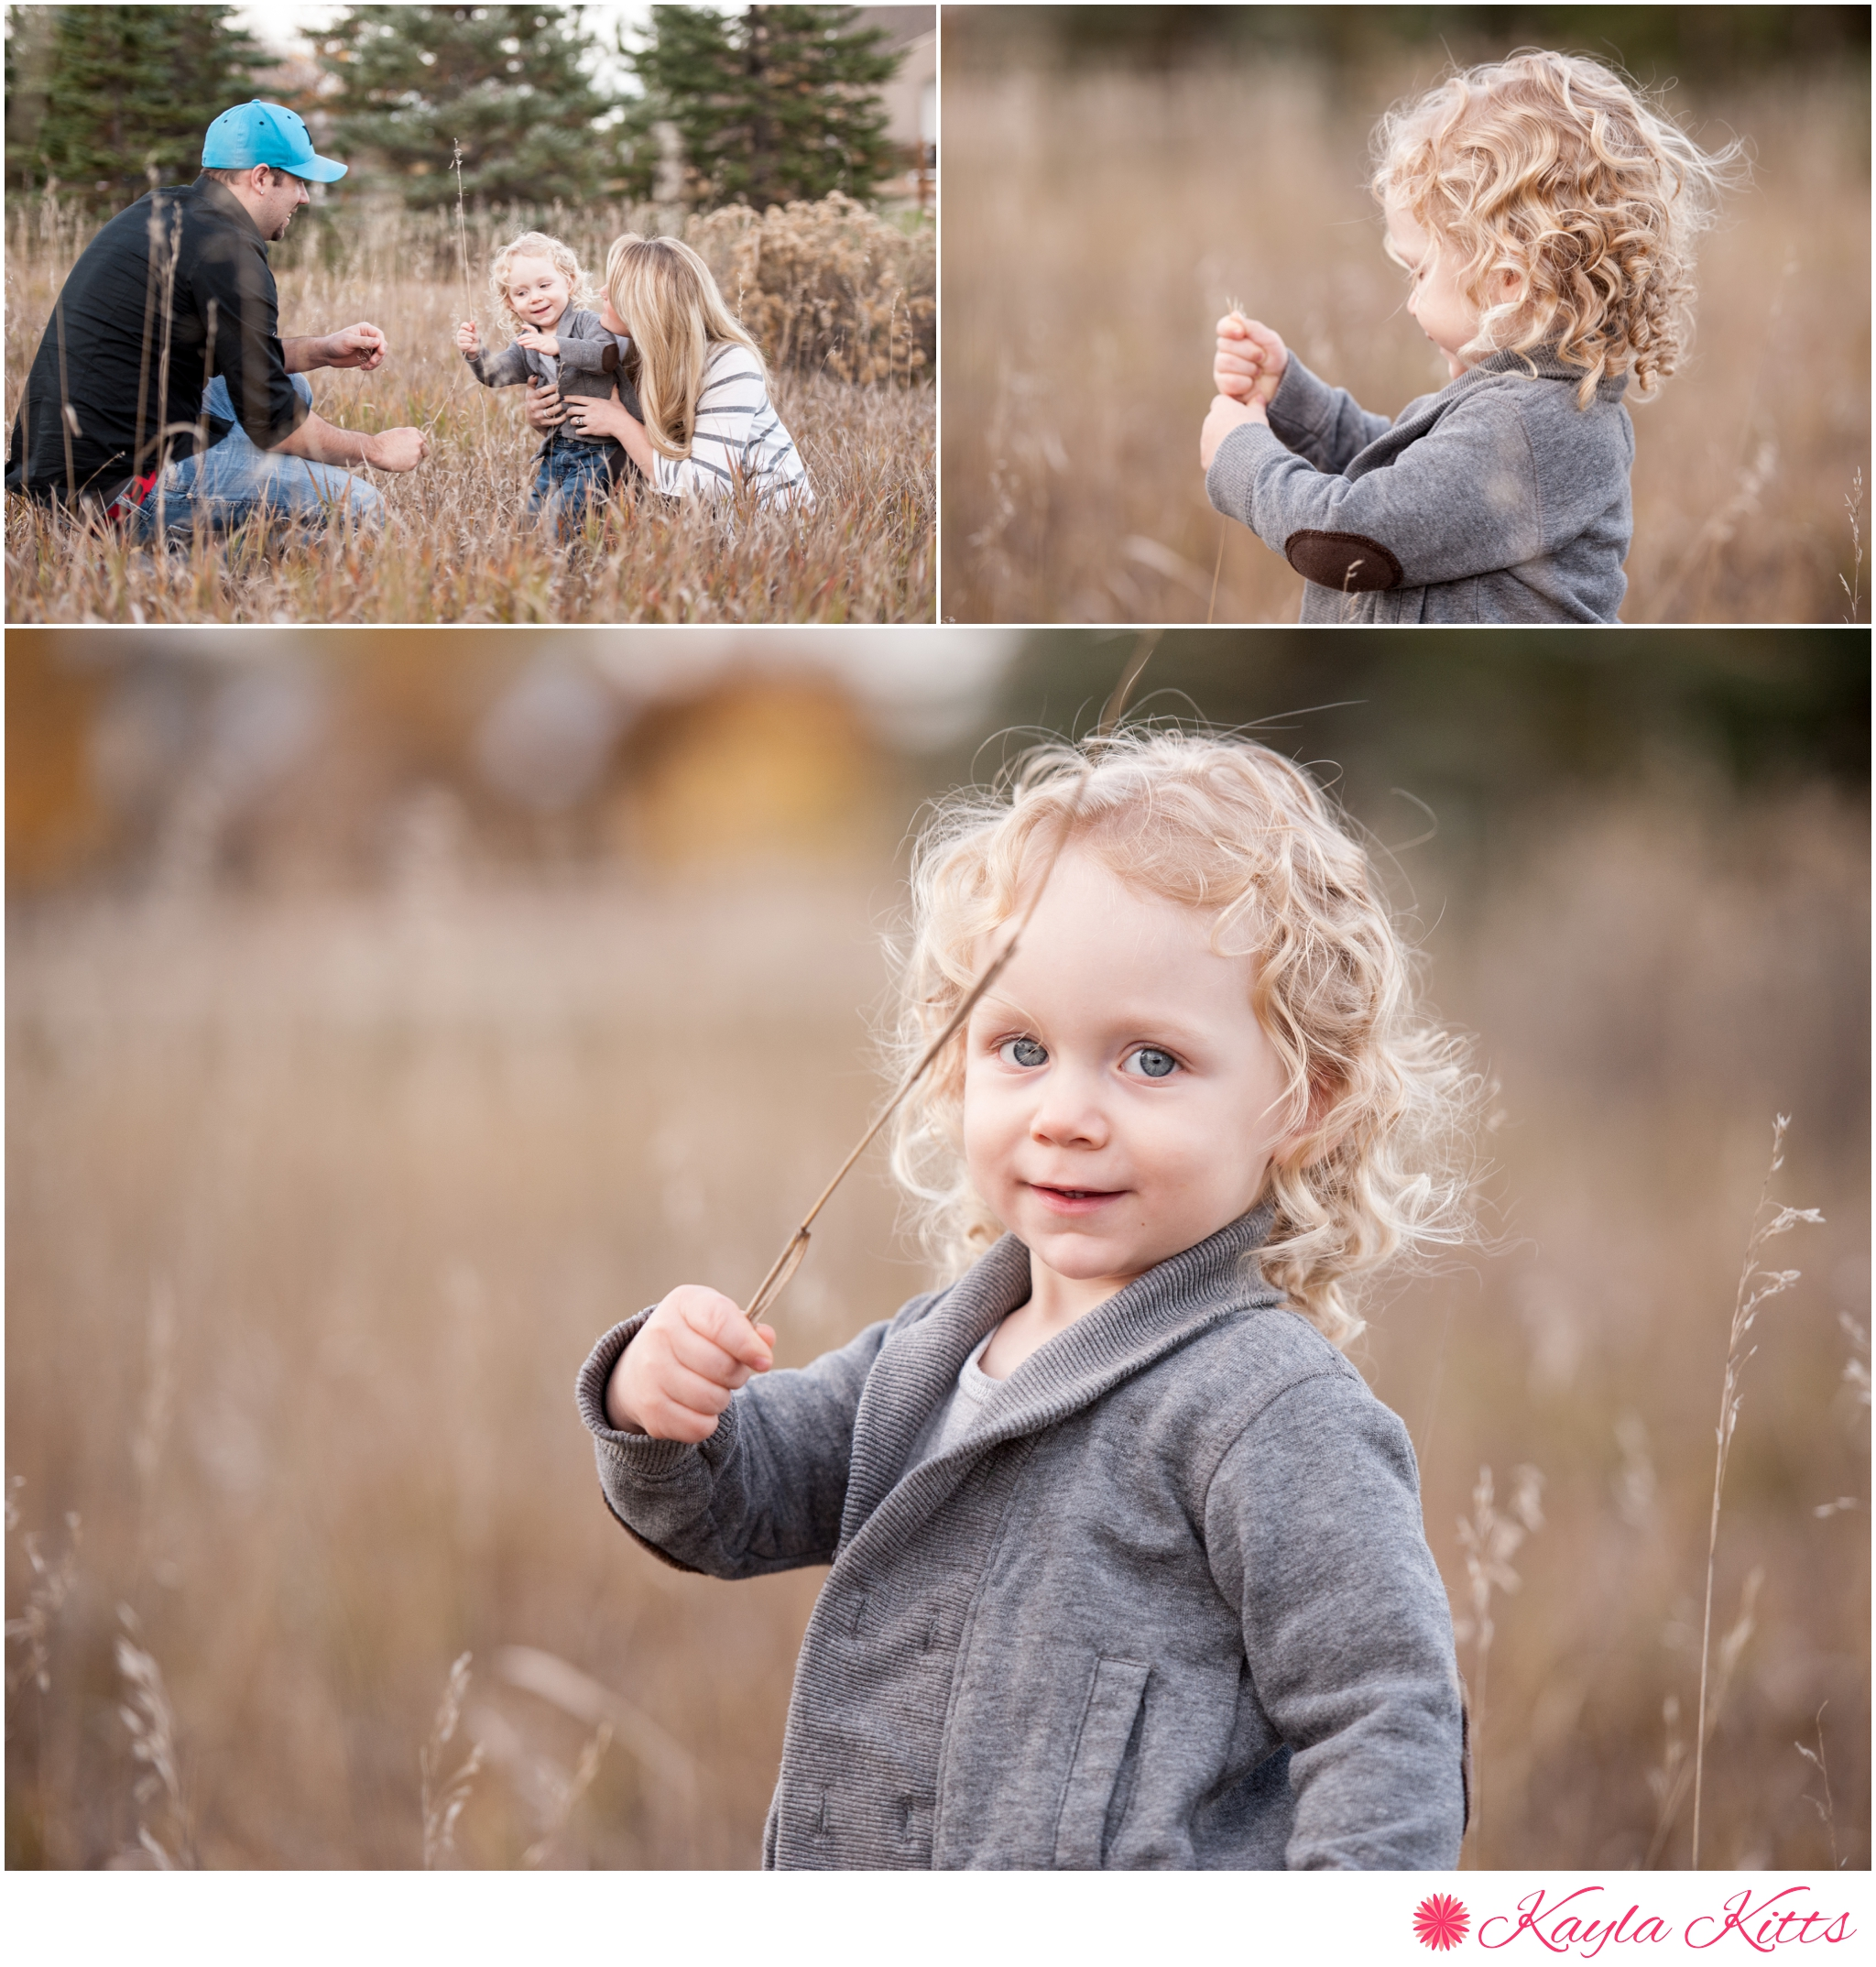 albuquerque family photographer, albuquerque photographer, fort collins photography, fort collins photographer, fort collins family photographer, albuquerque maternity photographer